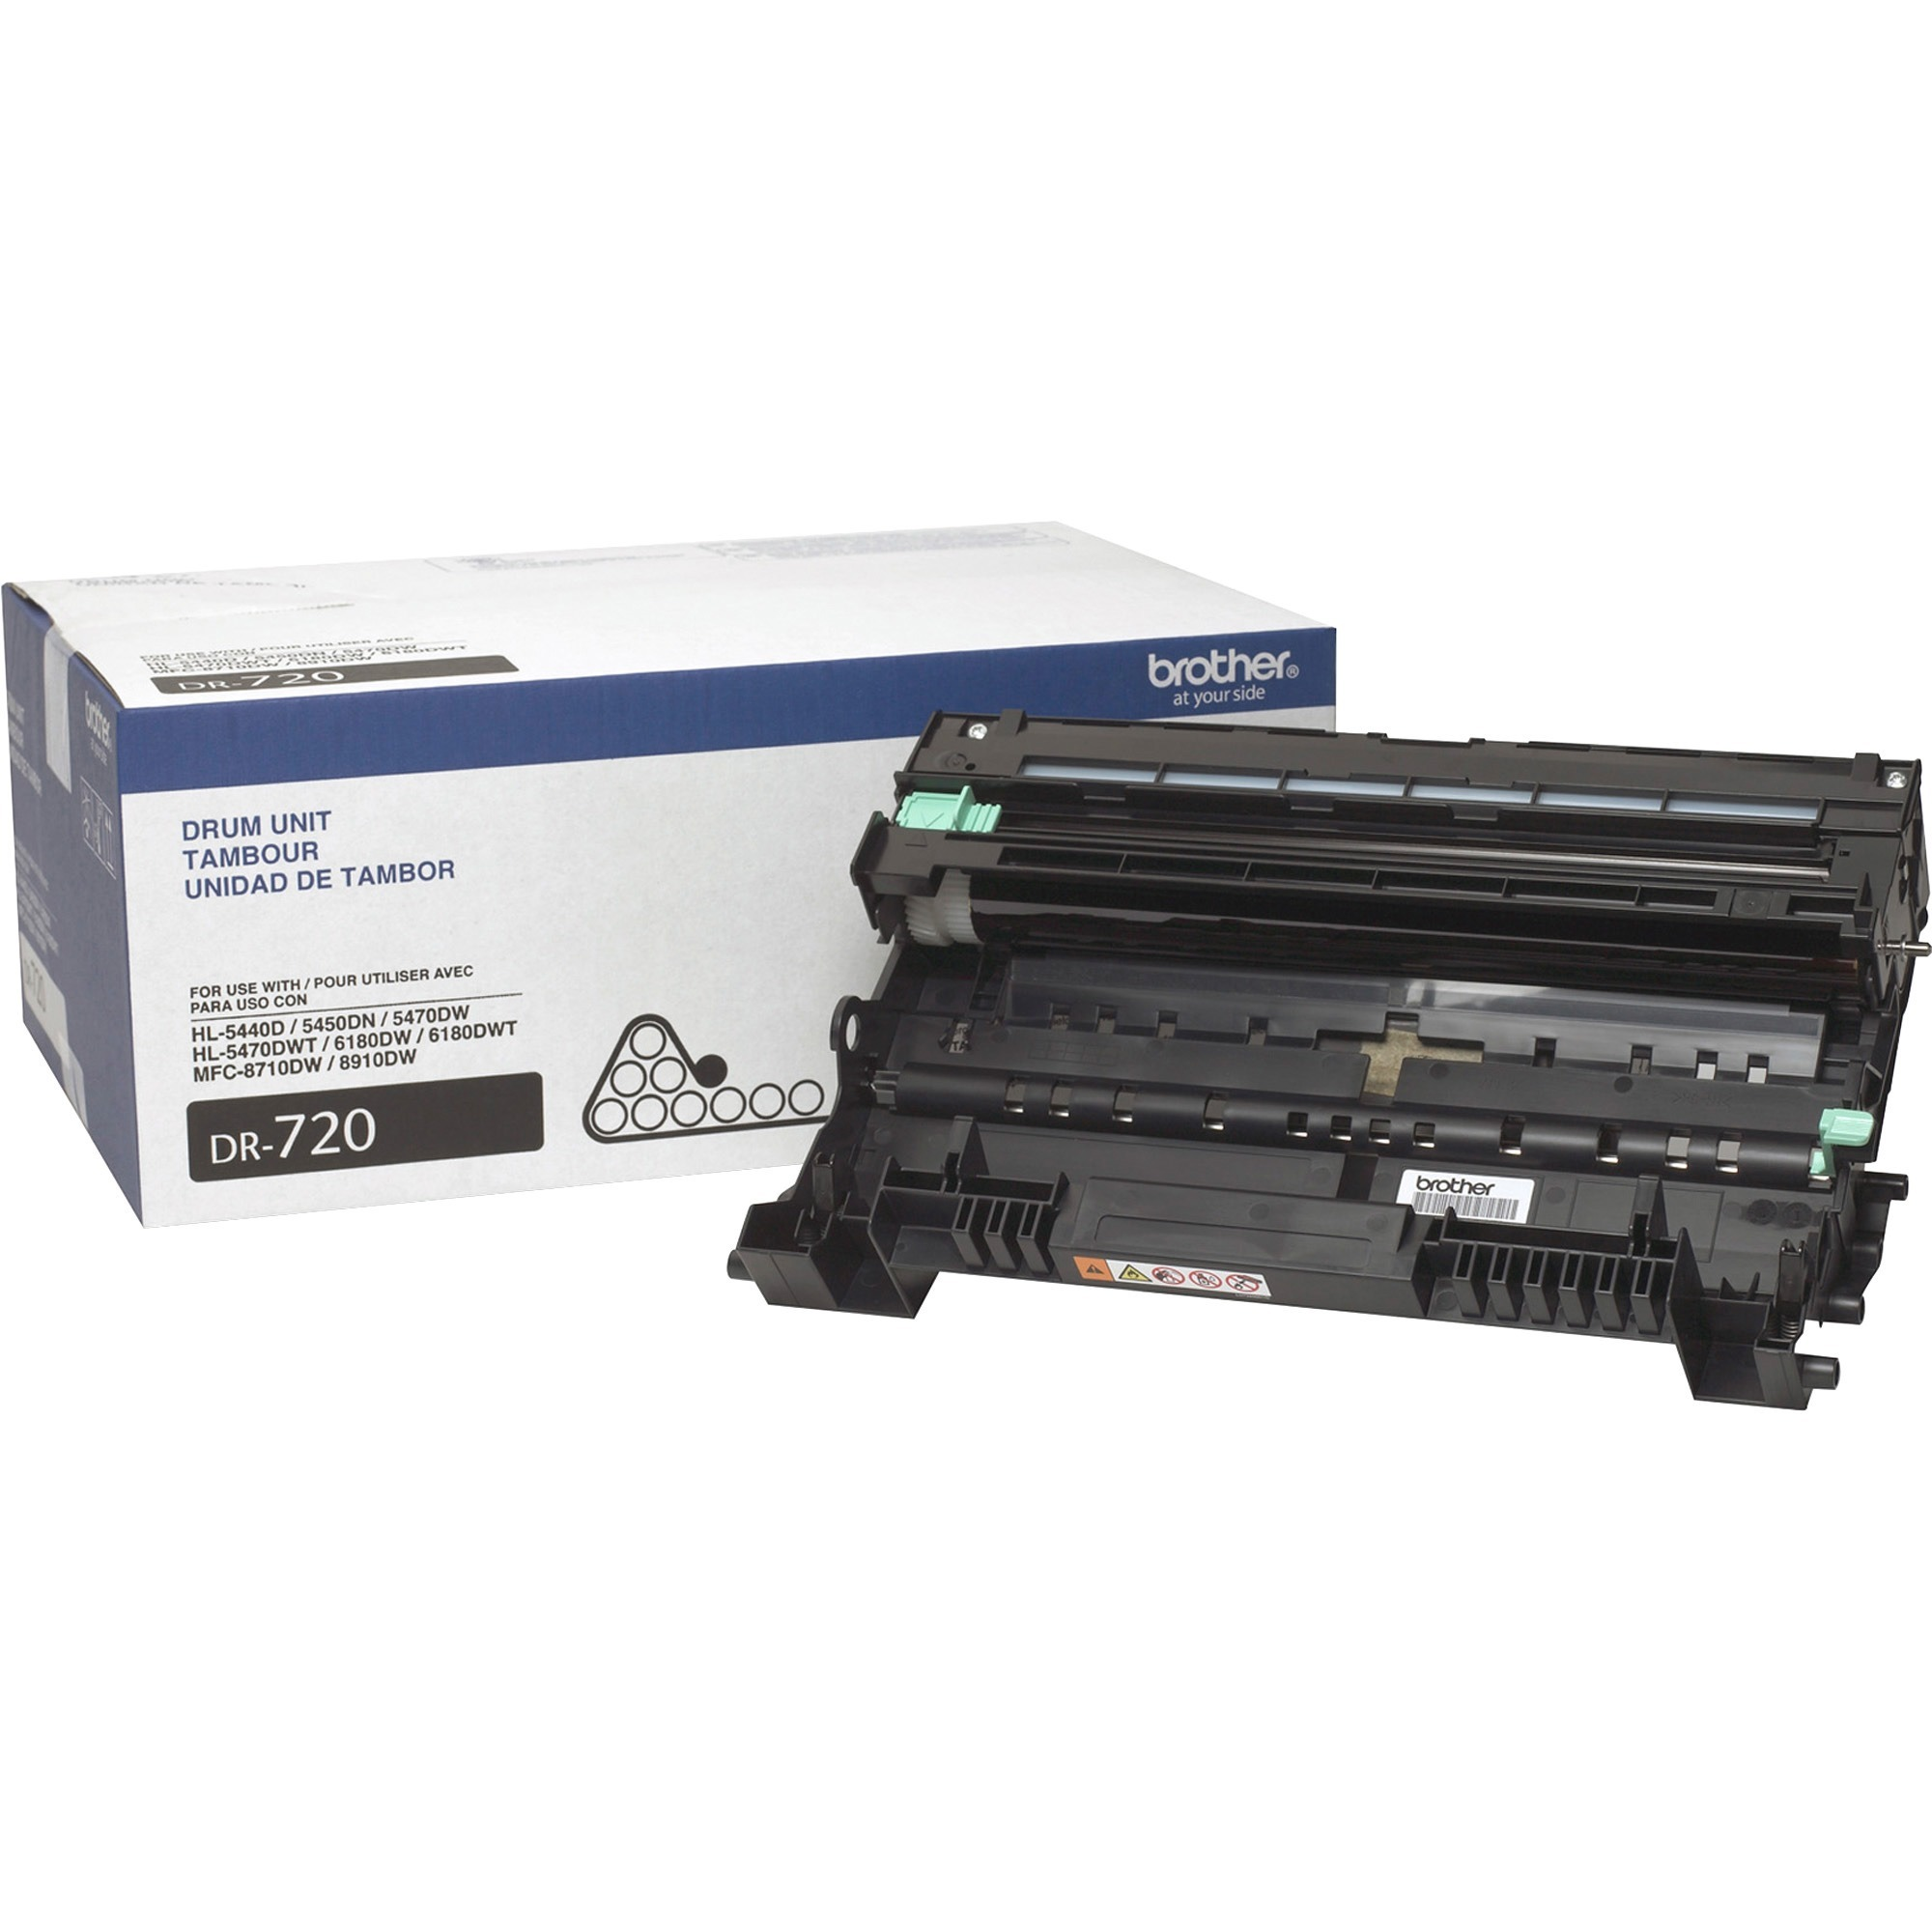 BROTHER MFC-8950DWT CUPS PRINTER DRIVERS WINDOWS 7 (2019)